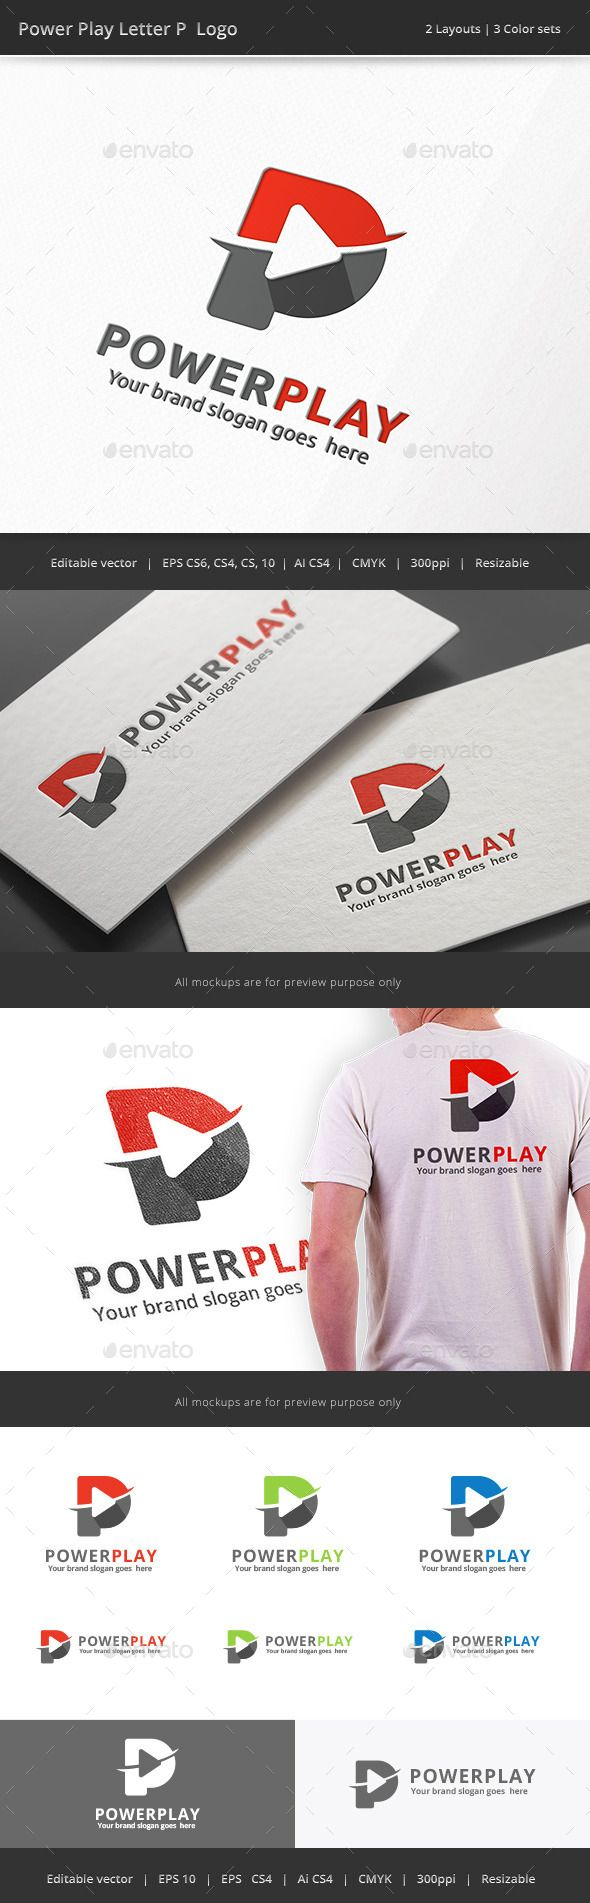 Power Play Letter P - Logo Design Template Vector #logotype Download it here: http://graphicriver.net/item/power-play-letter-p-logo/11616228?s_rank=552?ref=nexion